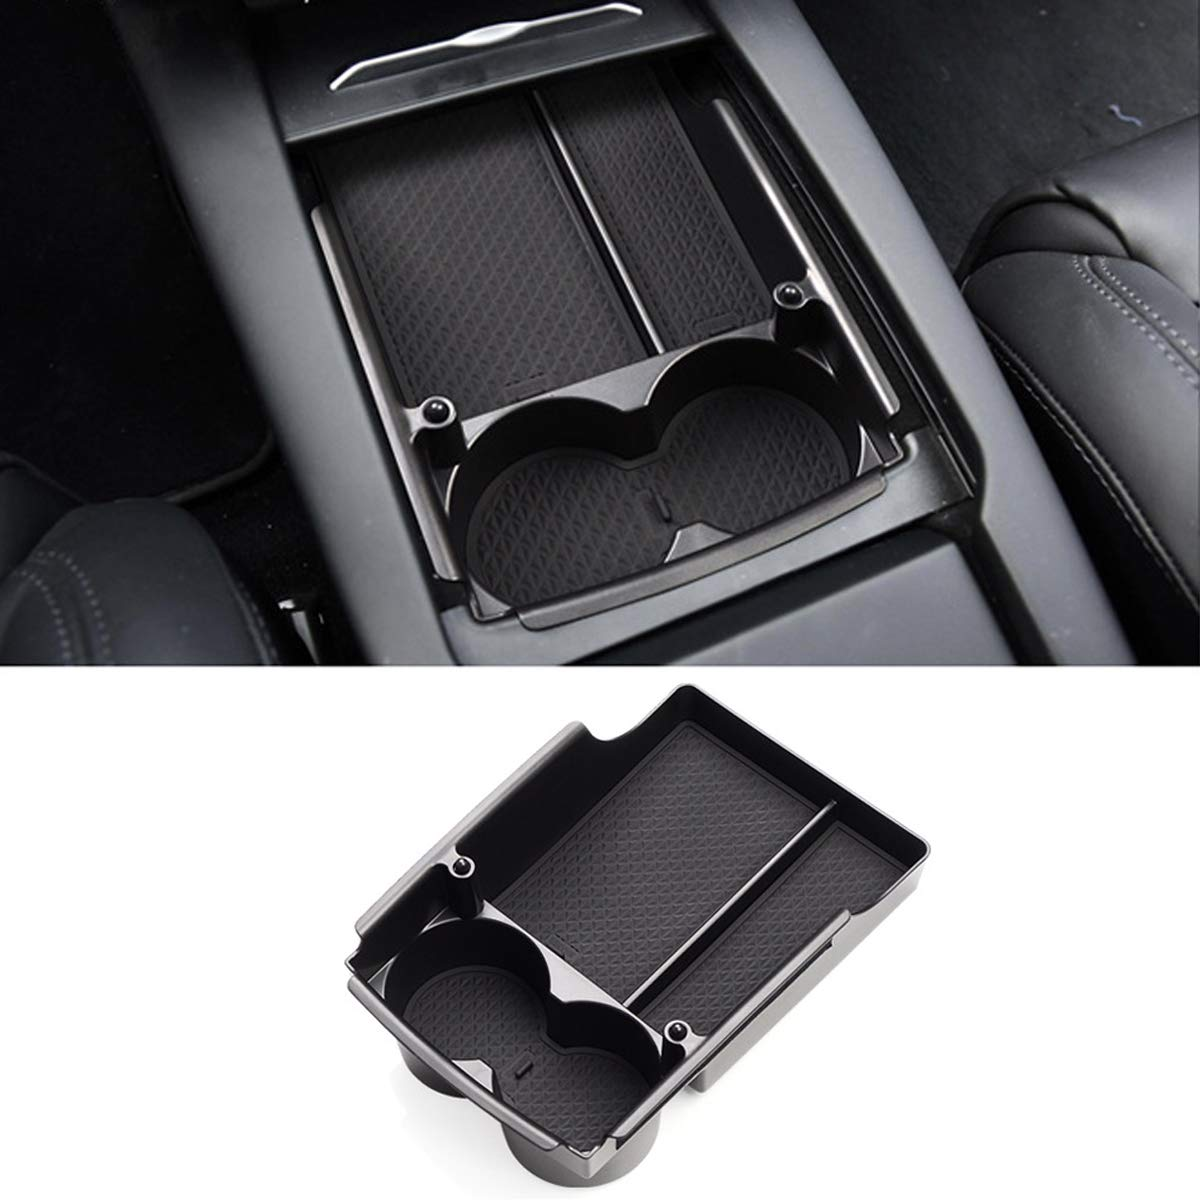 Console Armrest Storage Box and Cup Holders Compatible with Tesla Model S//X 2016 2017 2018 Model X TTCR-II for Tesla Model S//X Centre Organizer Tray